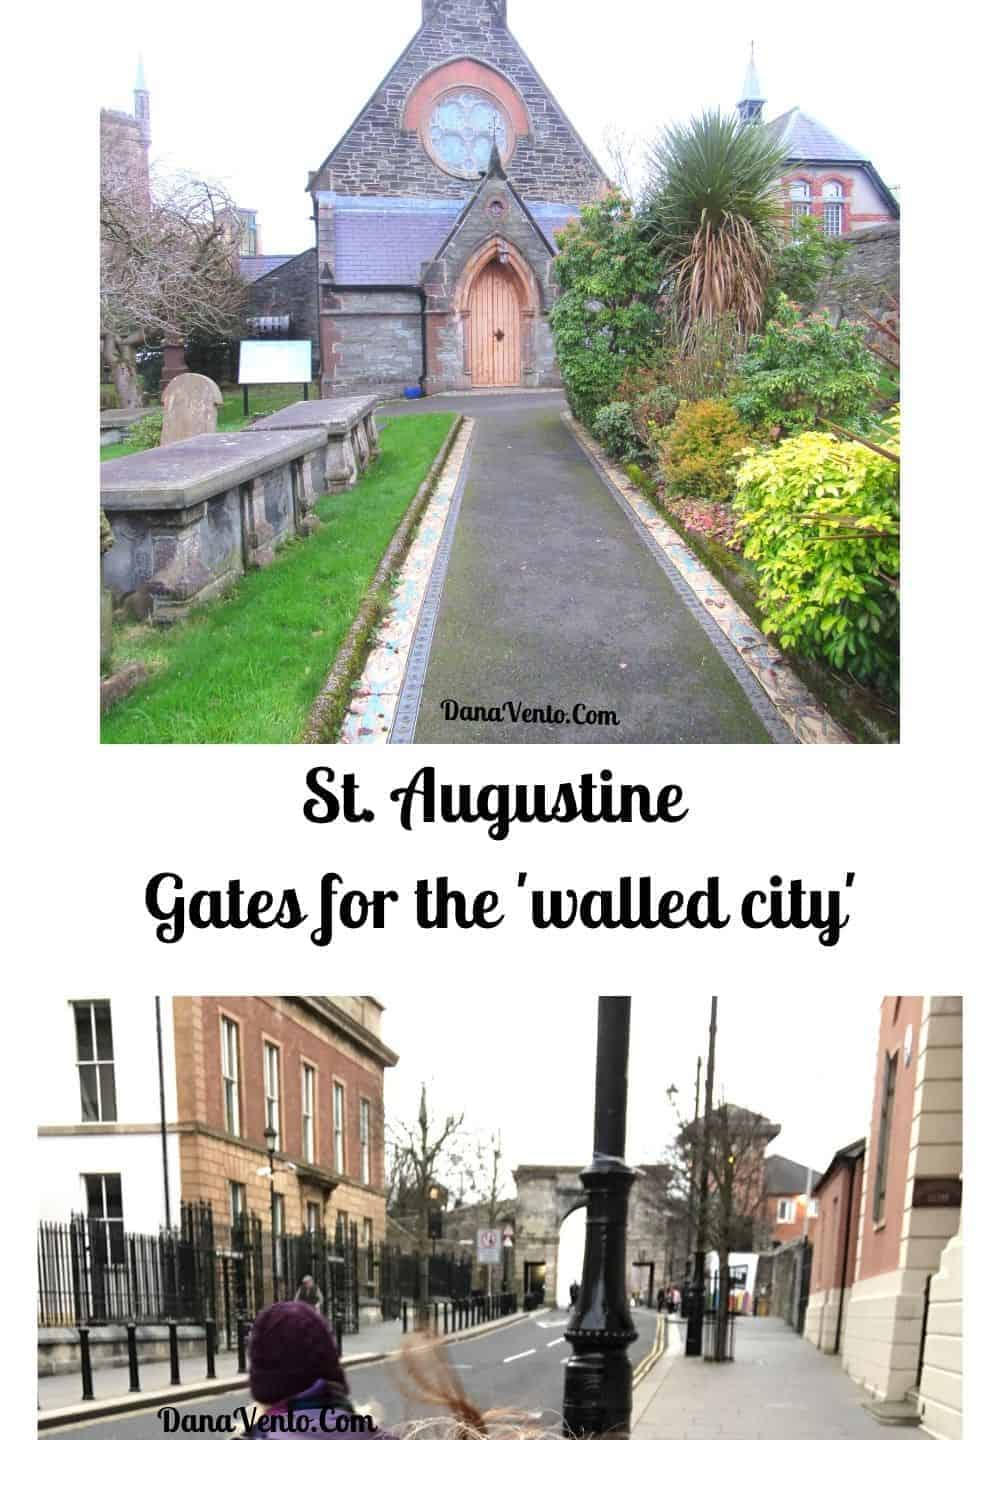 St Augustine Gates for the Walled City